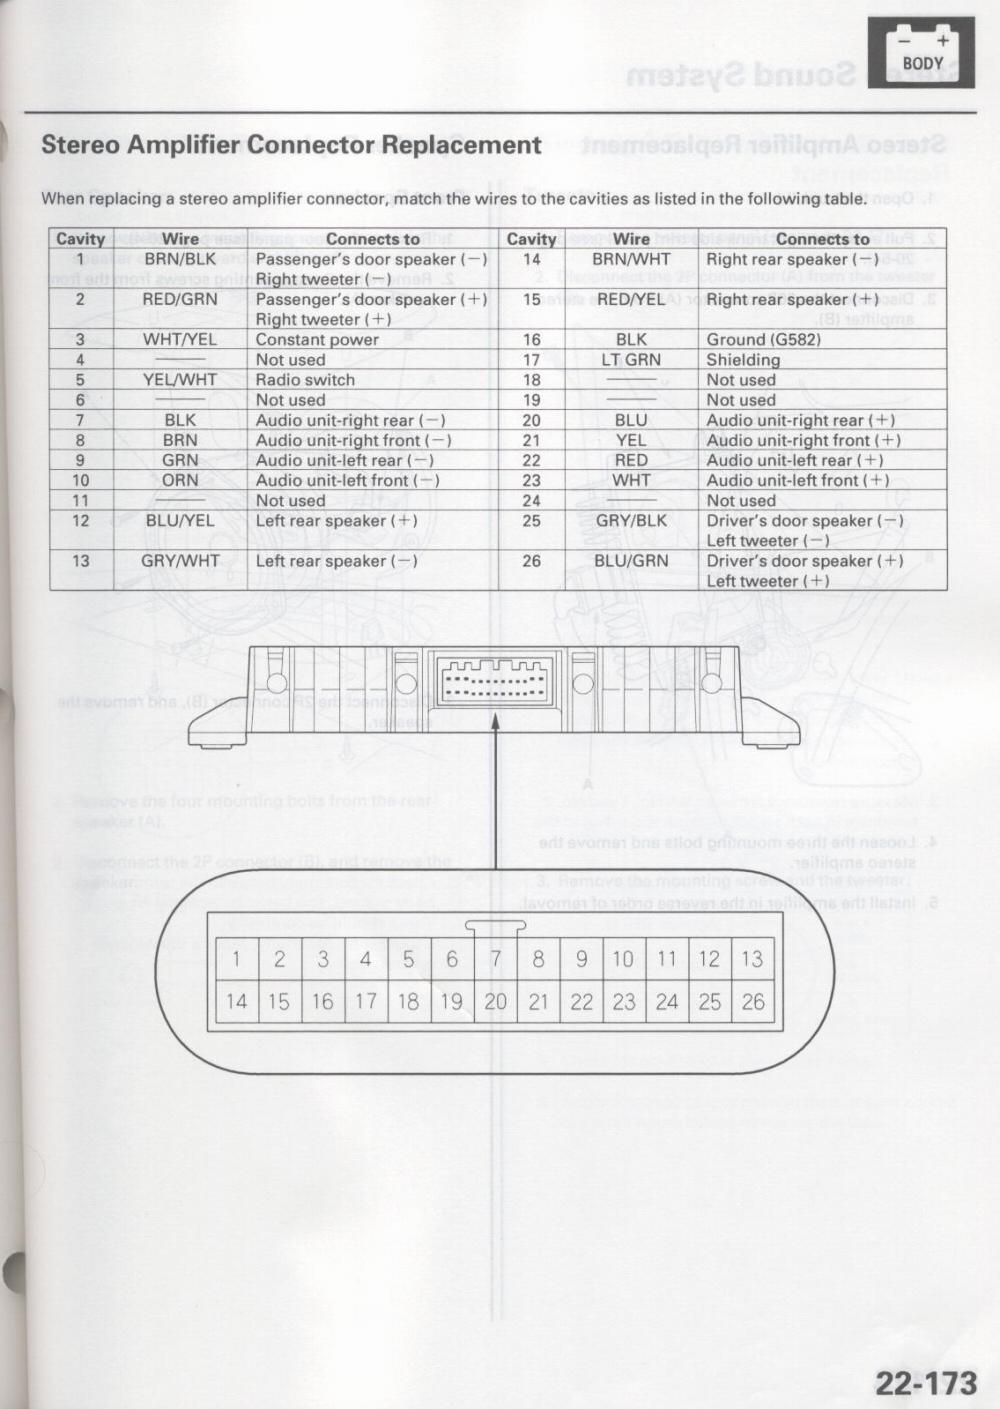 Free Wiring Diagram: 2003 Acura El Wiring Diagram on